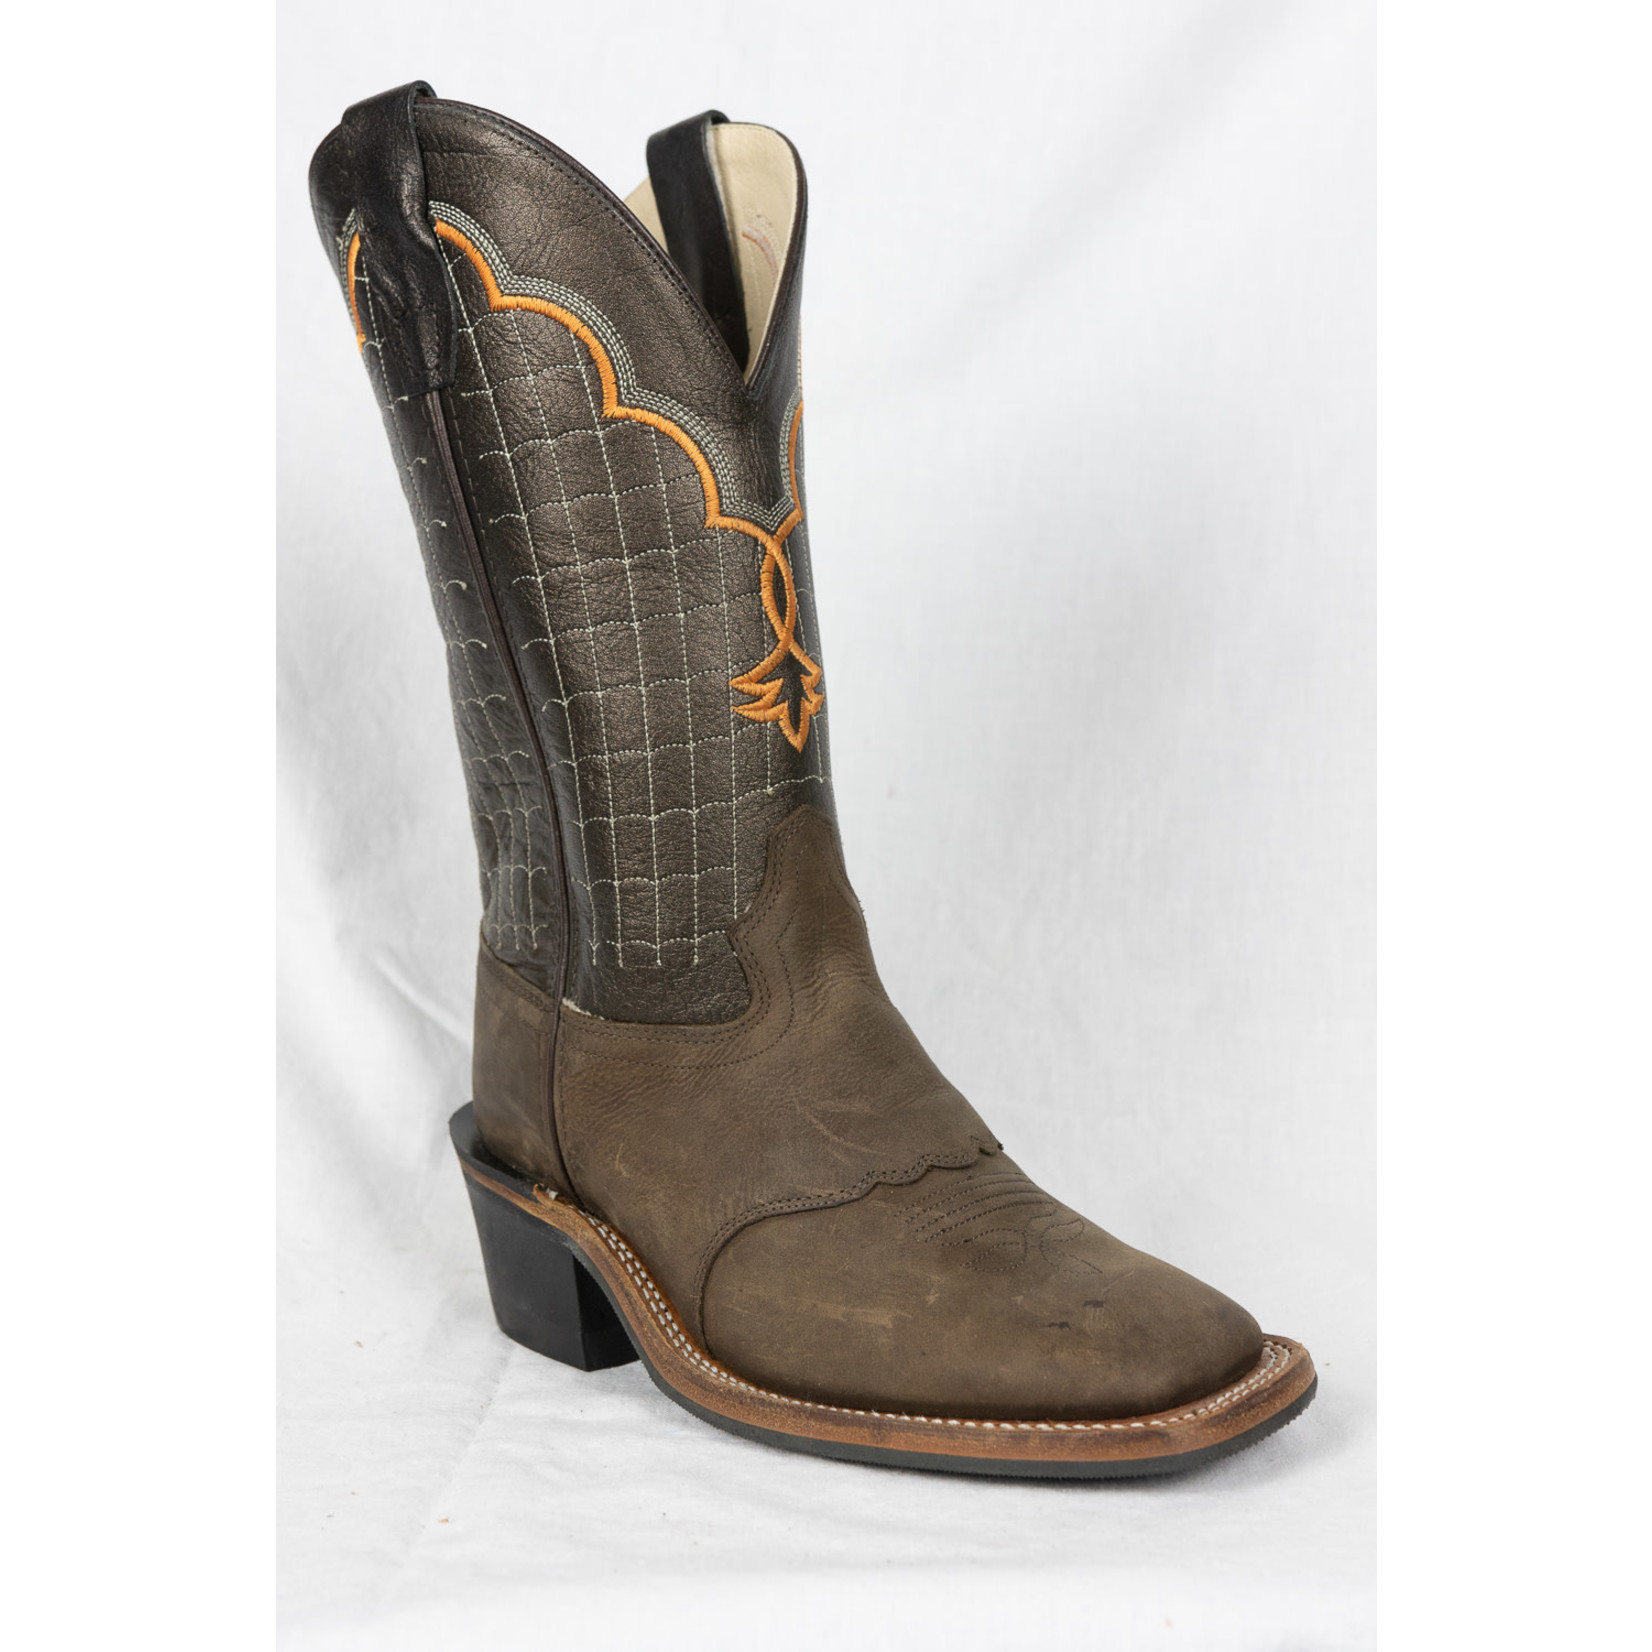 Old west Old WestYouth  Brown Square Toe Cowboy Boot BSY1865 4